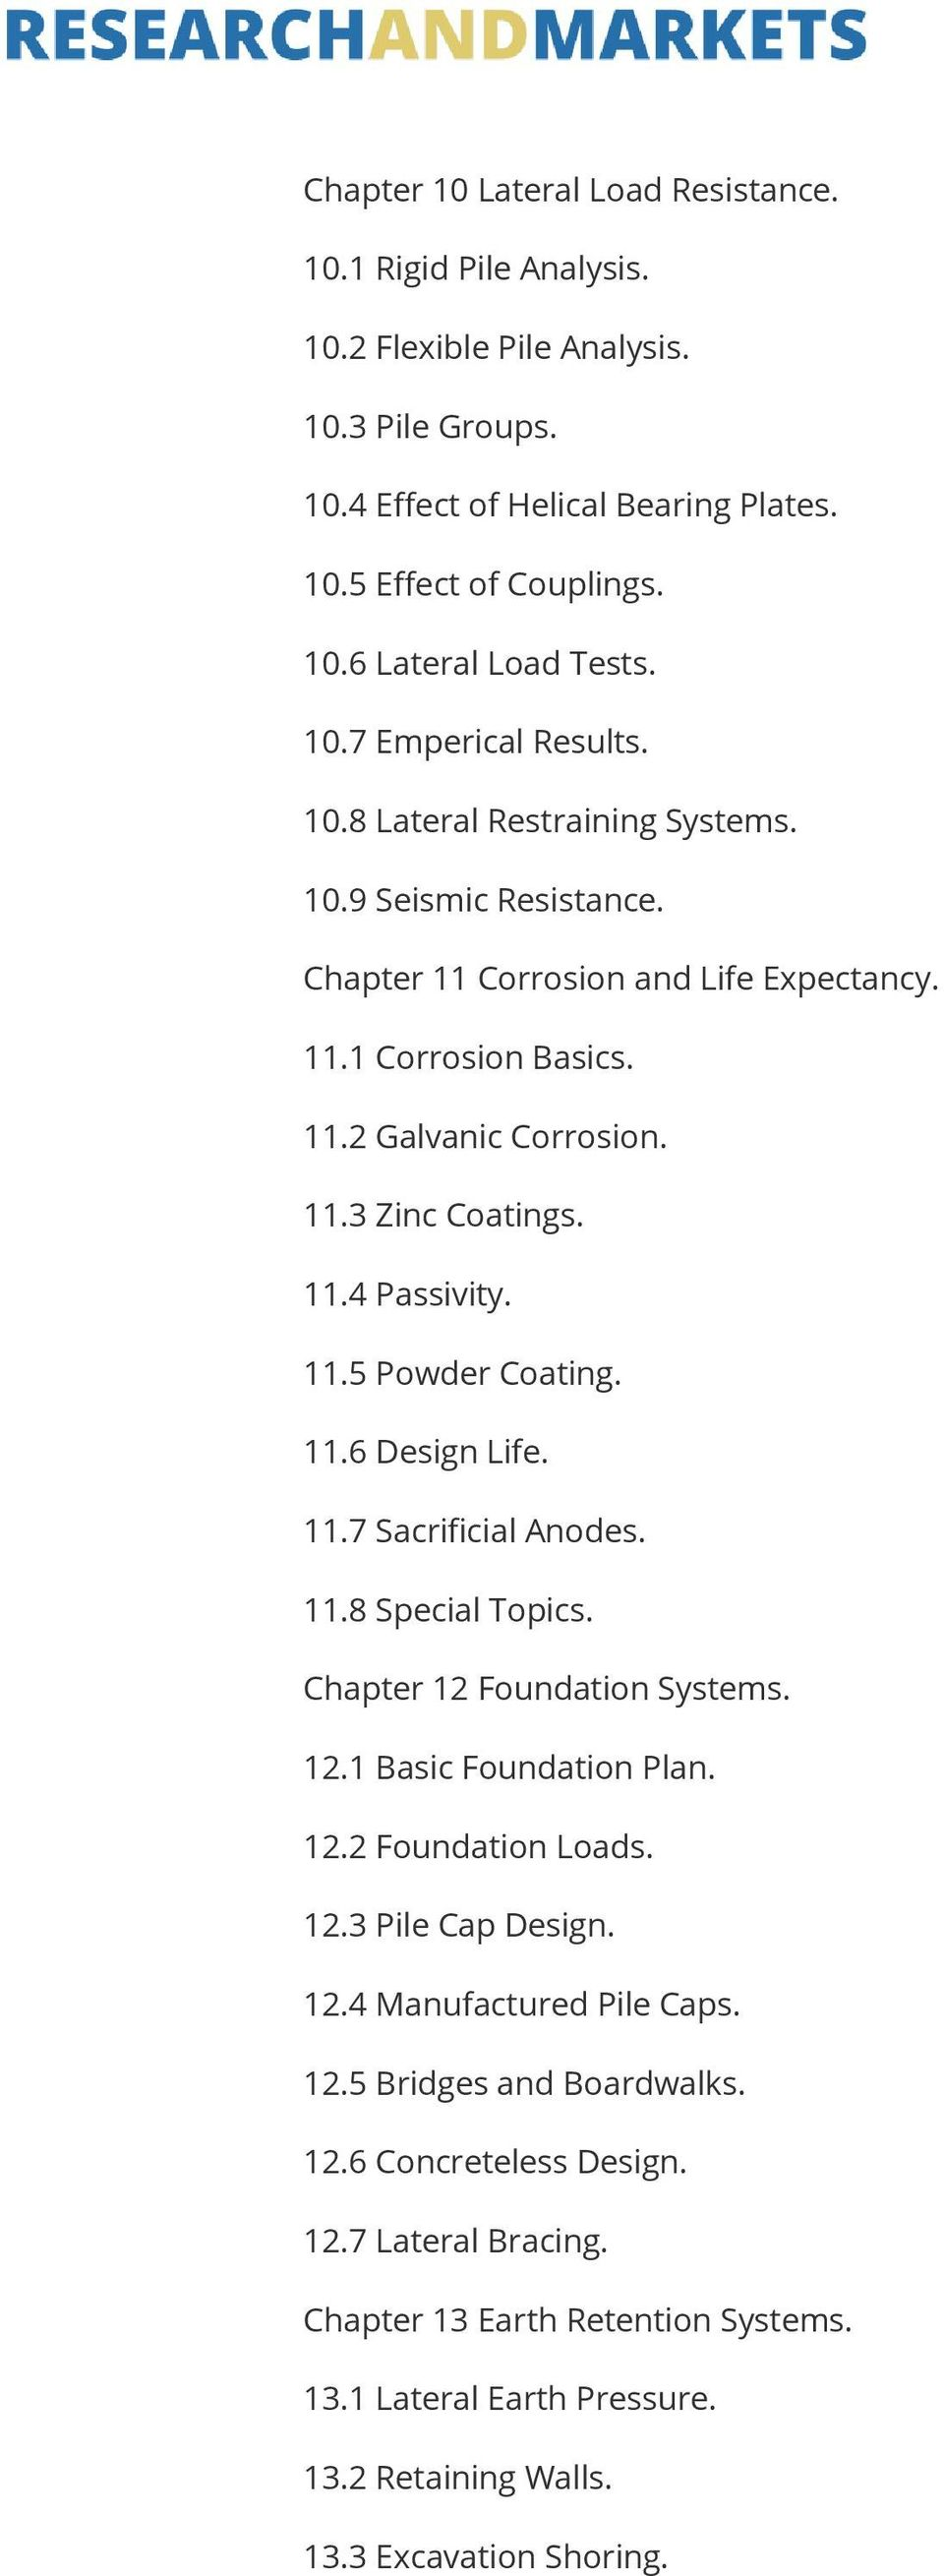 11.5 Powder Coating. 11.6 Design Life. 11.7 Sacrificial Anodes. 11.8 Special Topics. Chapter 12 Foundation Systems. 12.1 Basic Foundation Plan. 12.2 Foundation Loads. 12.3 Pile Cap Design. 12.4 Manufactured Pile Caps.